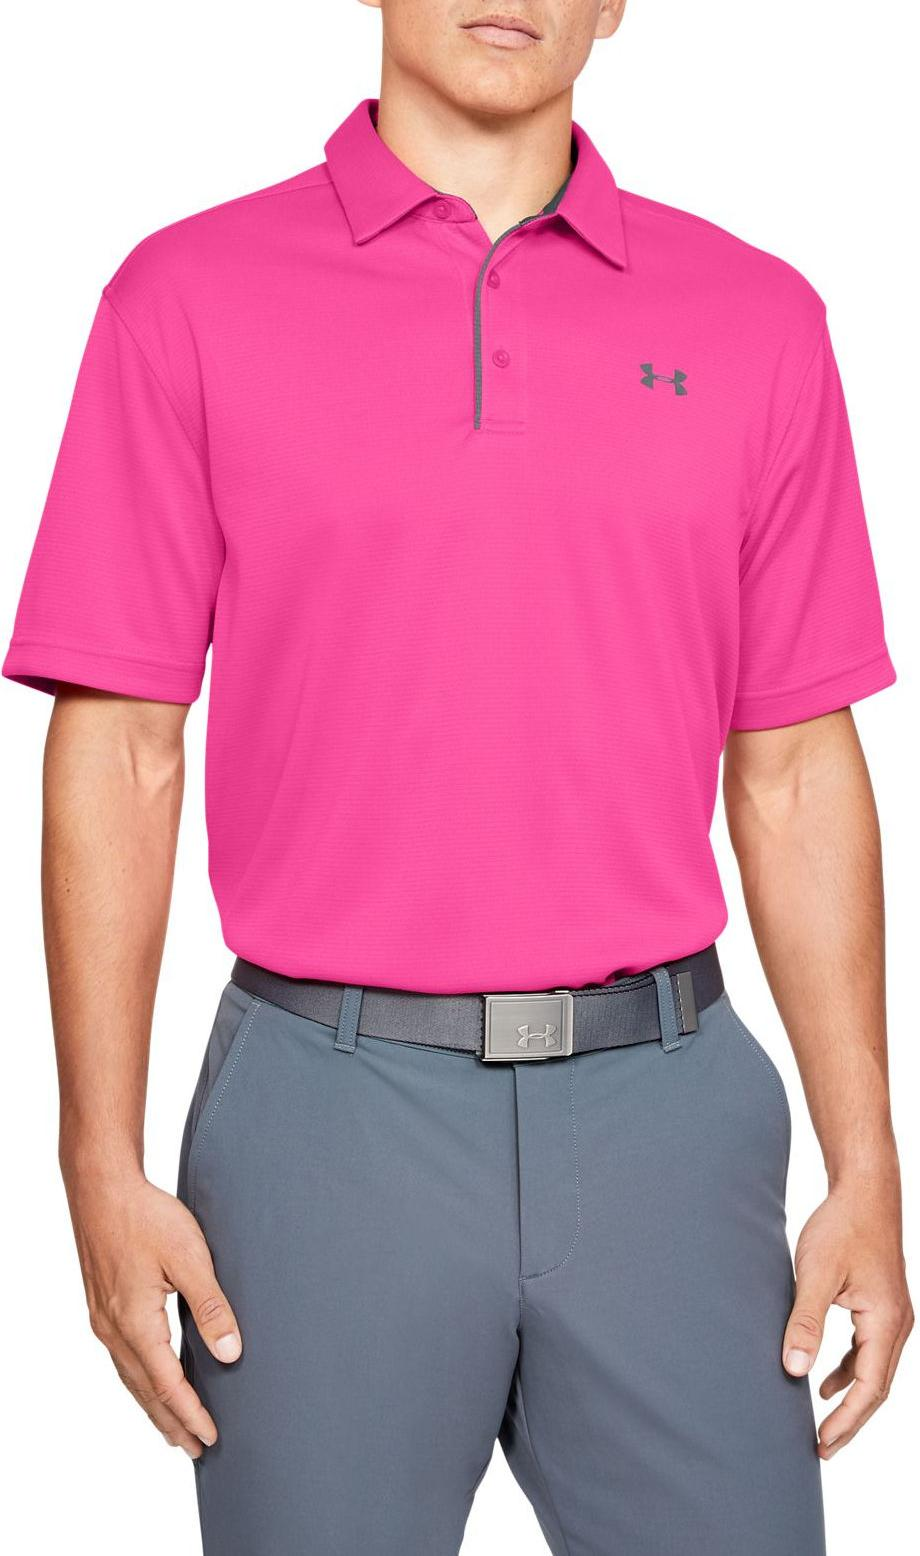 Under Armour Tech Polo Póló ingek